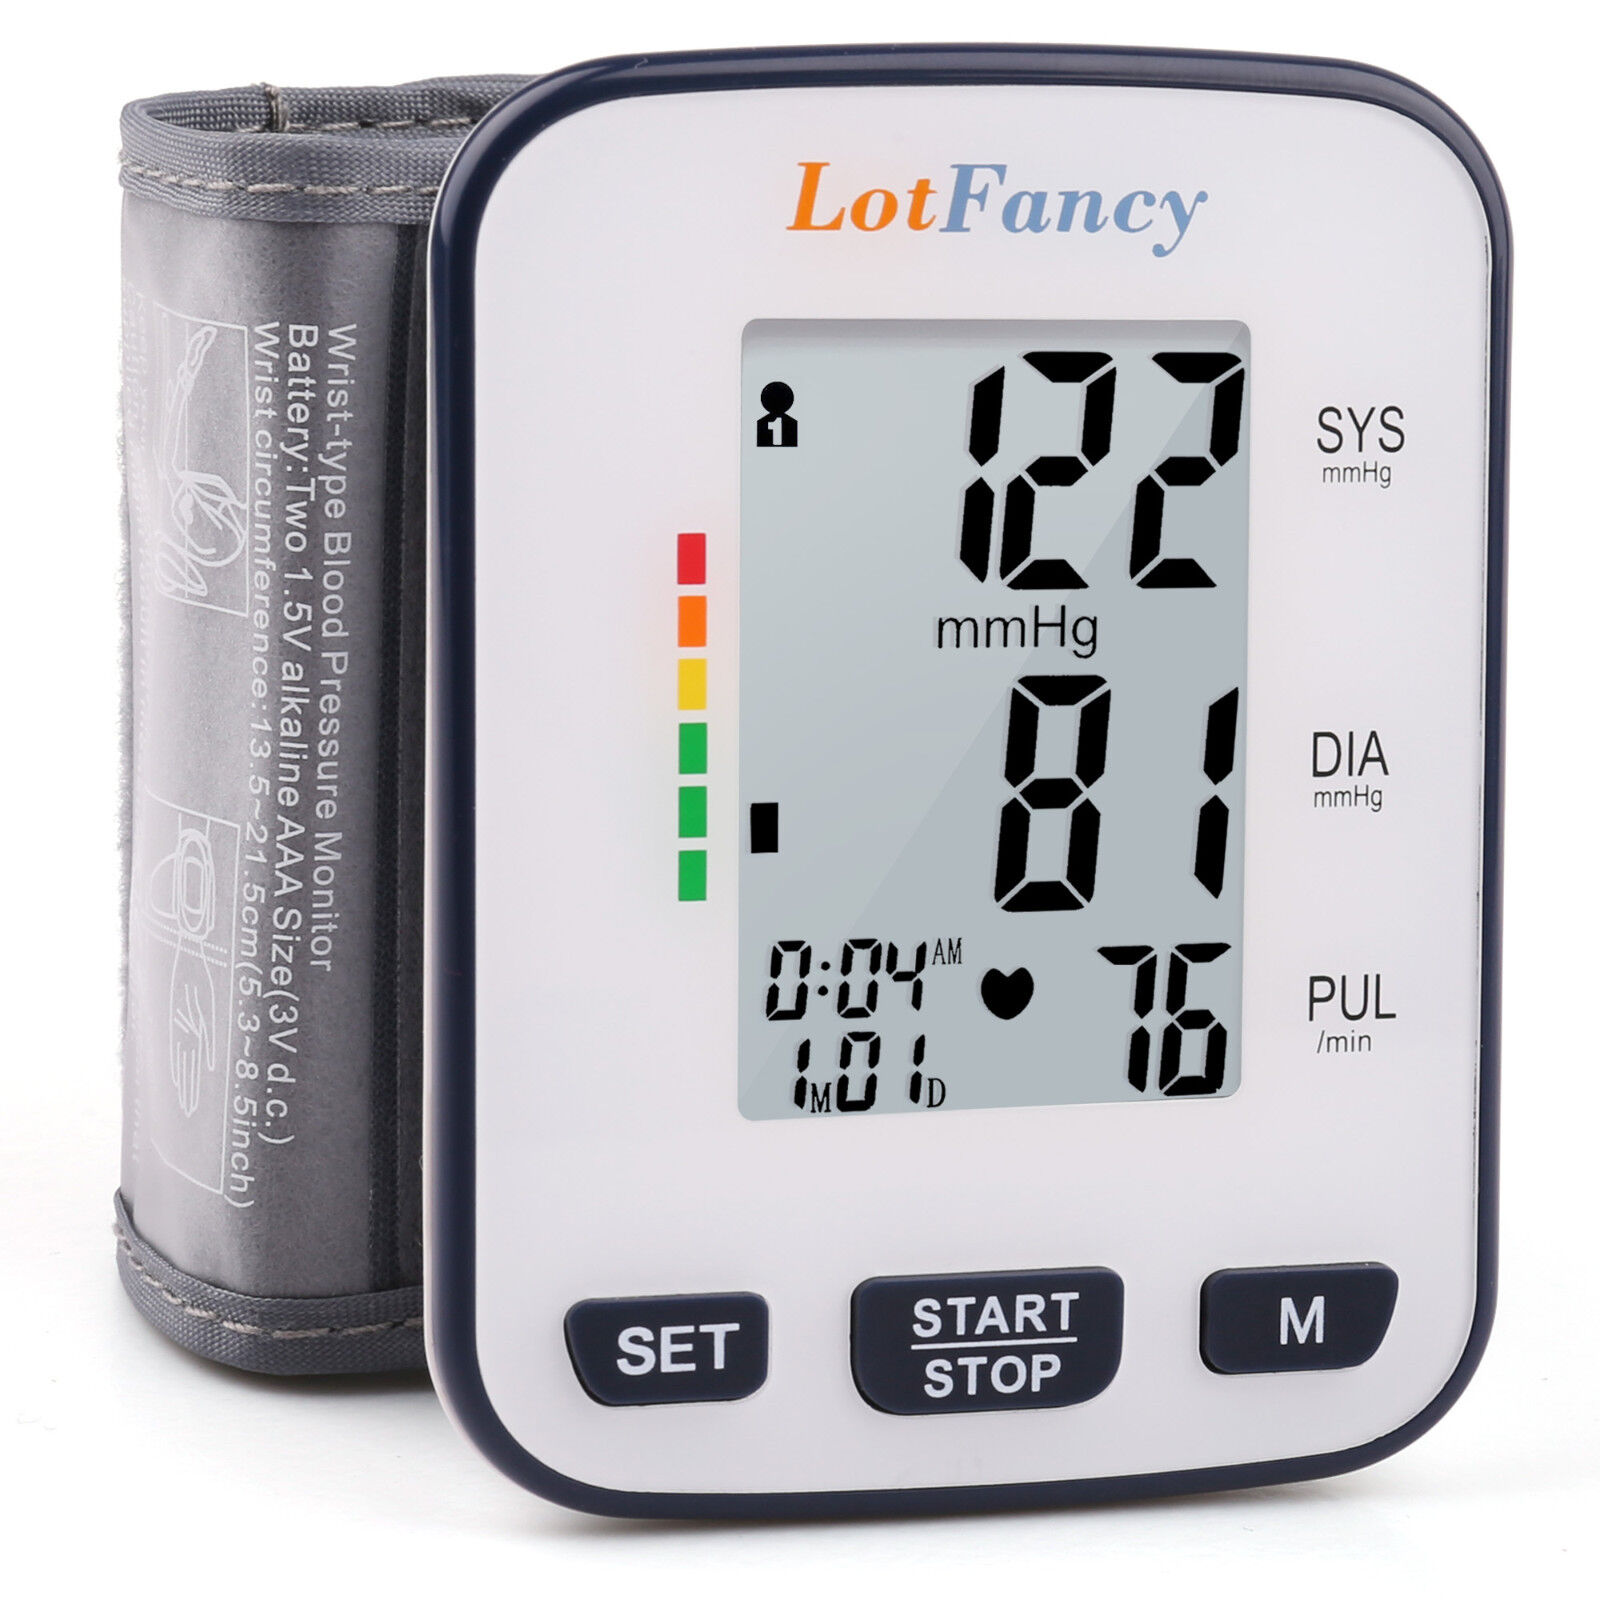 LotFancy Wrist High Blood Pressure Monitor BP Cuff Machine G